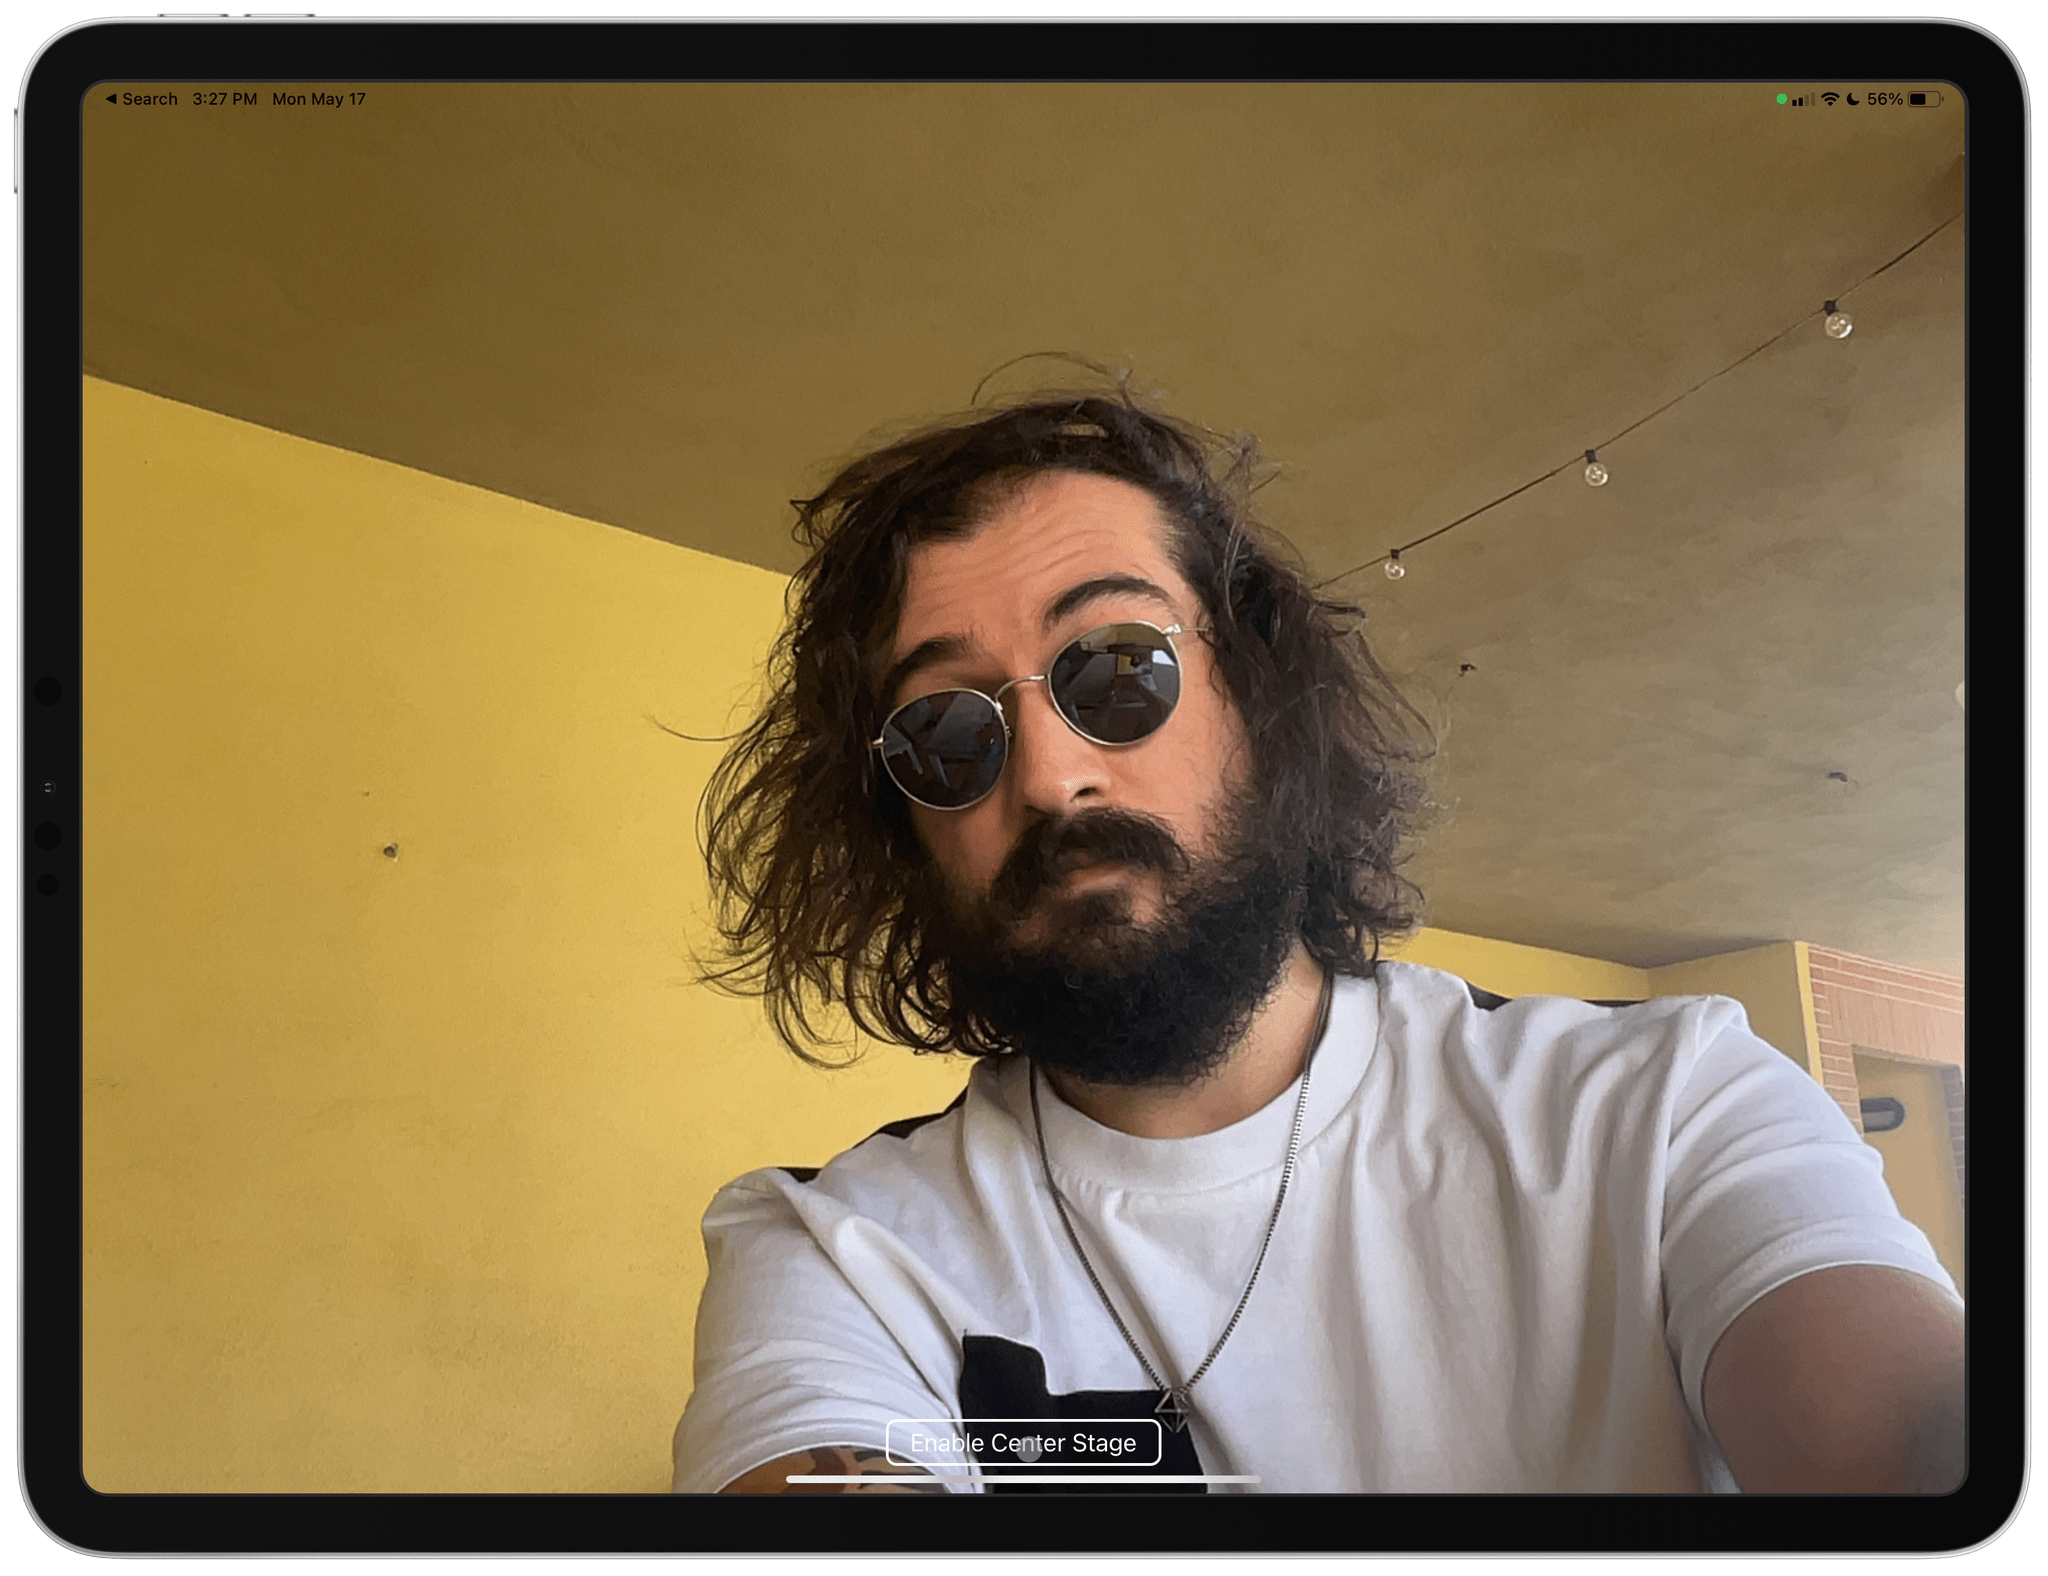 With Center Stage disabled, you can see how iPadOS sees the wider shot.